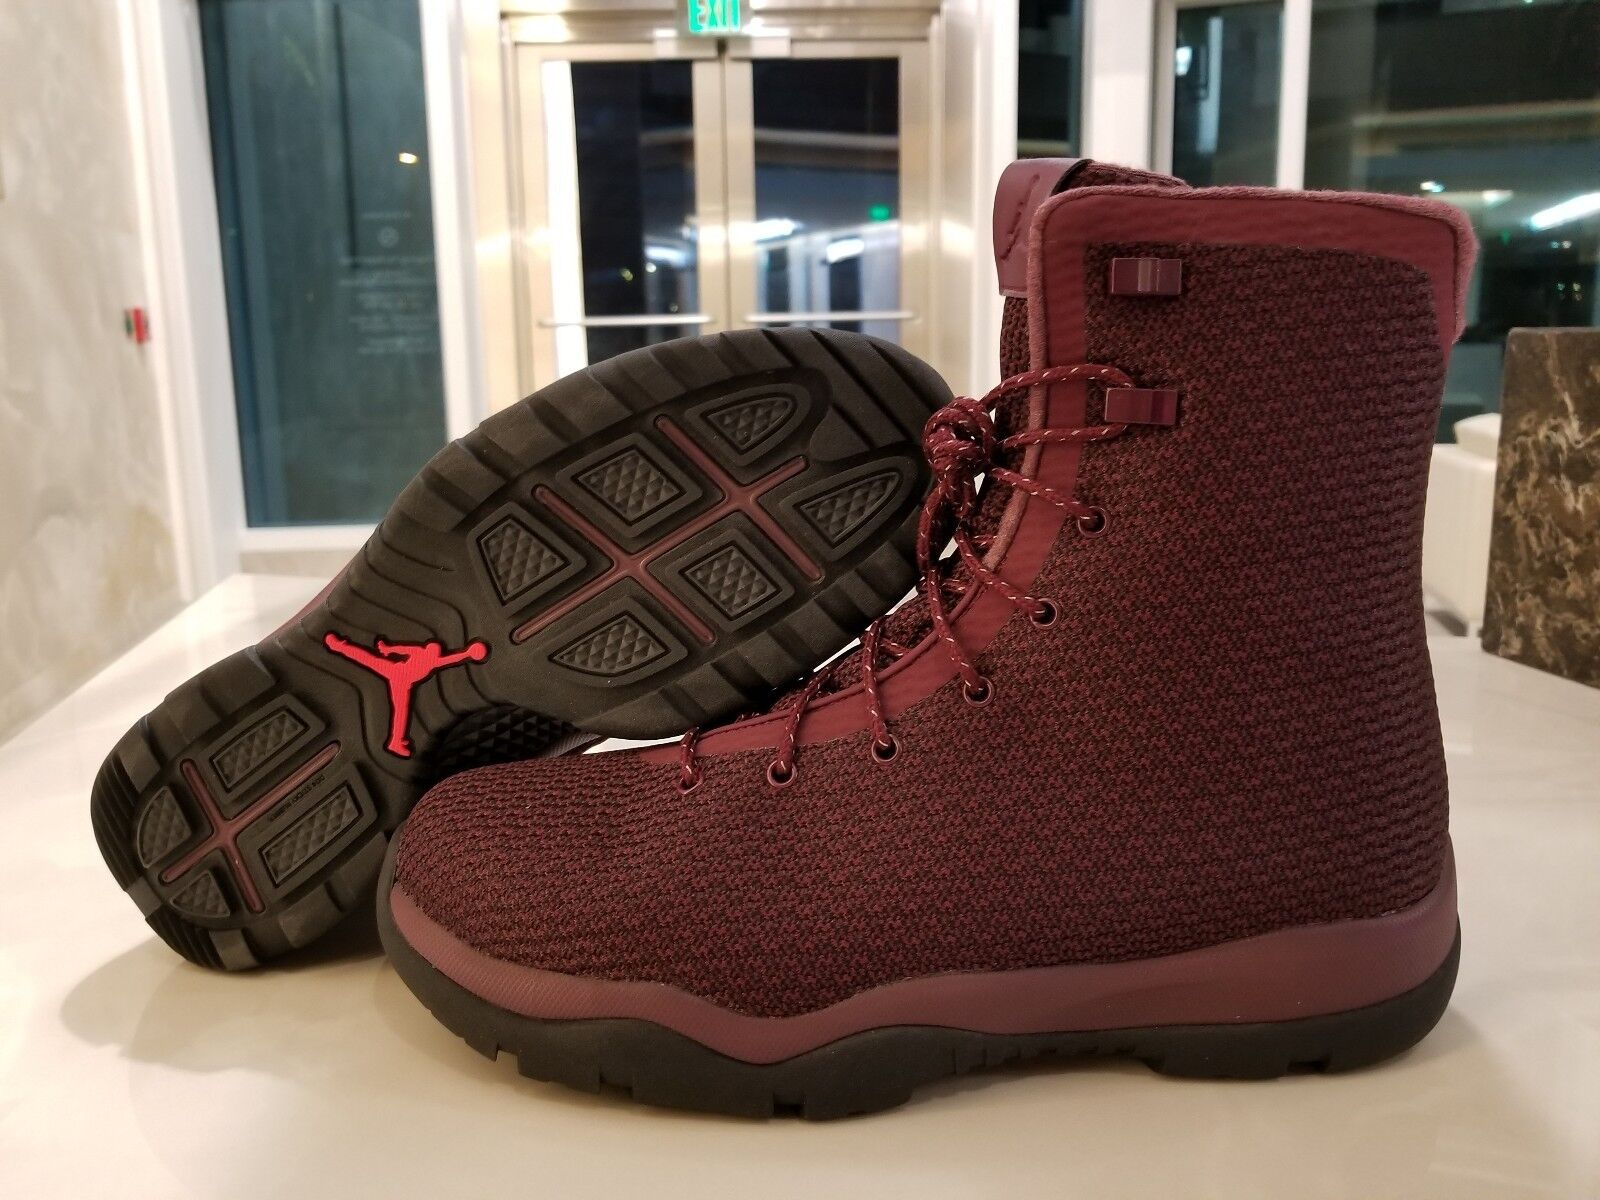 Nike Air Jordan Future Boot Night Maroon Burgundy Red Black SZ (854554-600)